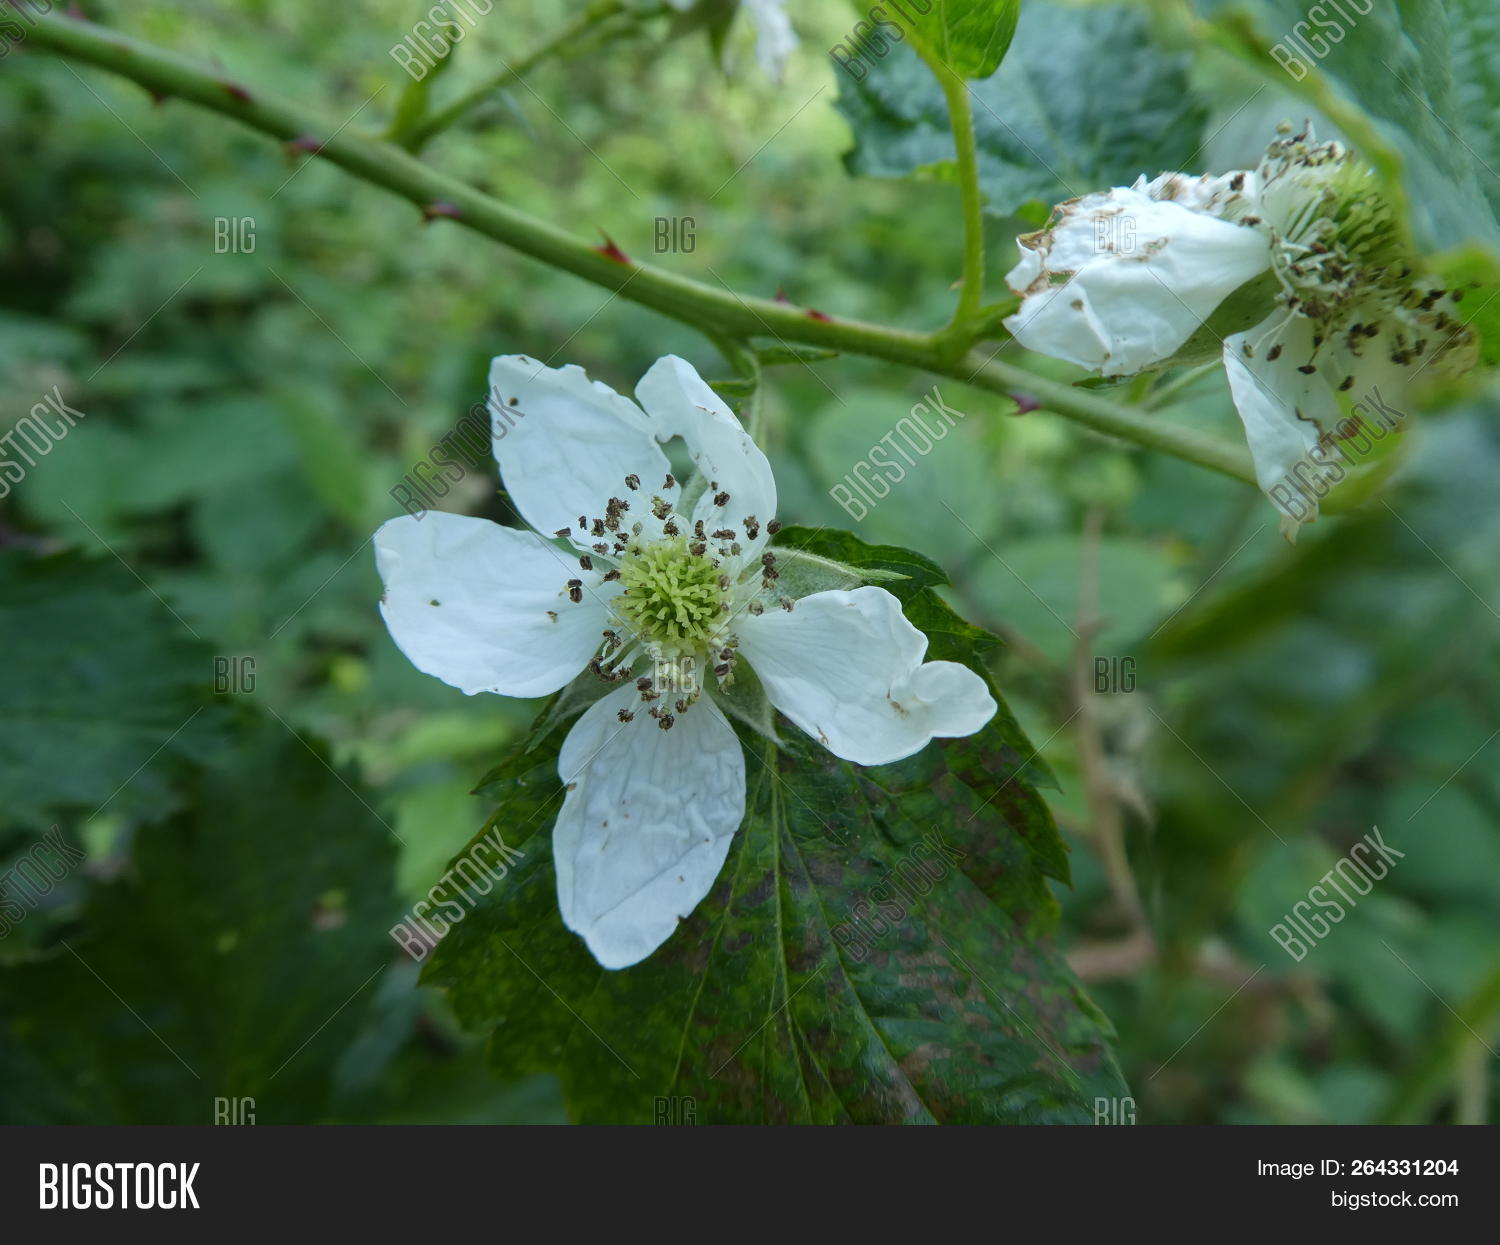 White,blossom,brambleberry,forest,fruit,sweet,wild